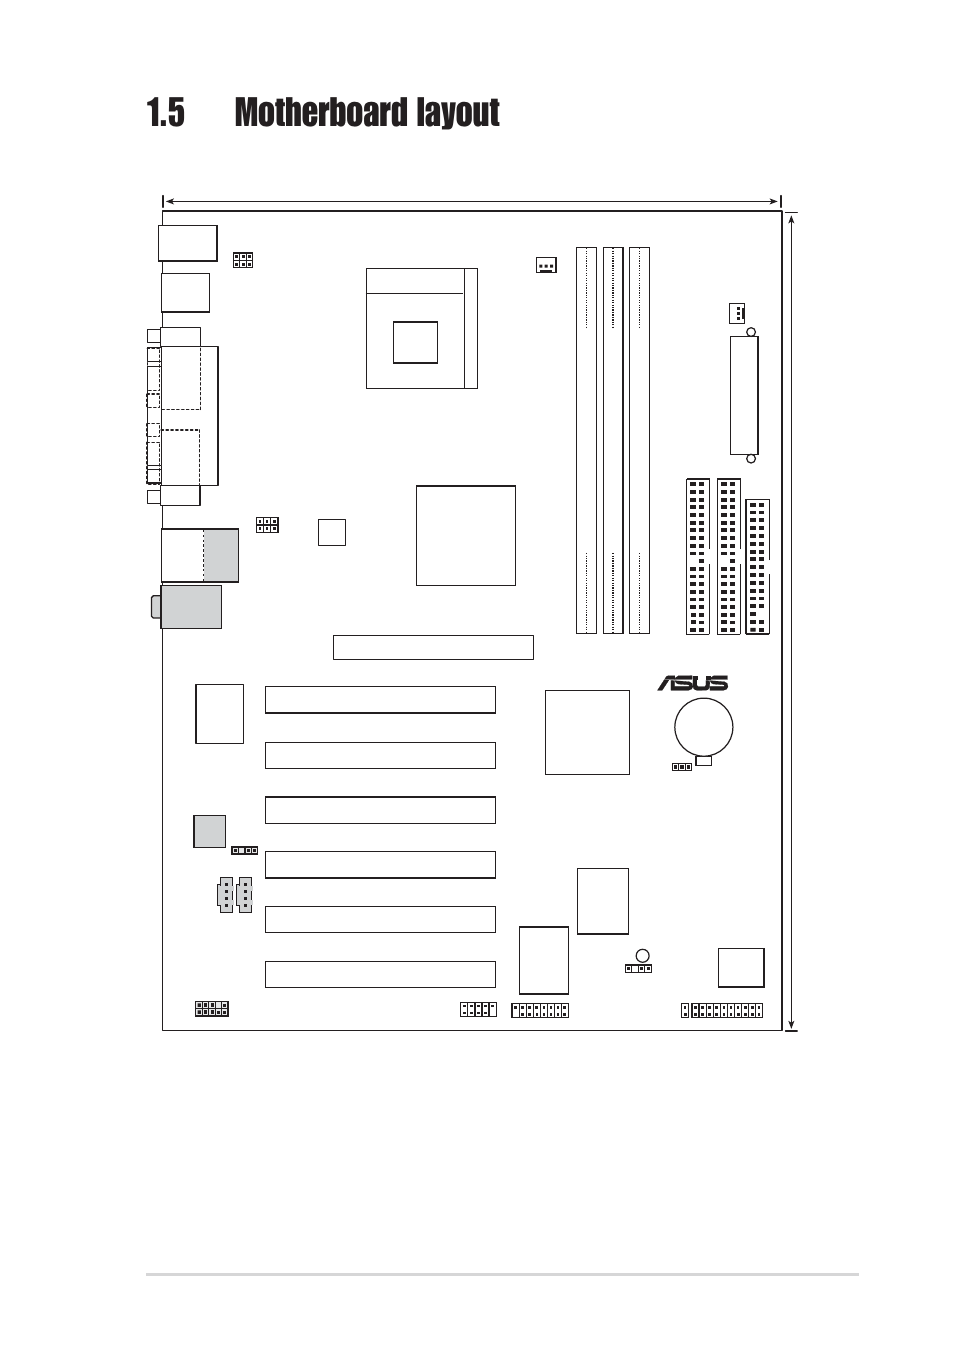 5 motherboard layout, Asus p4pe-x/te motherboard user